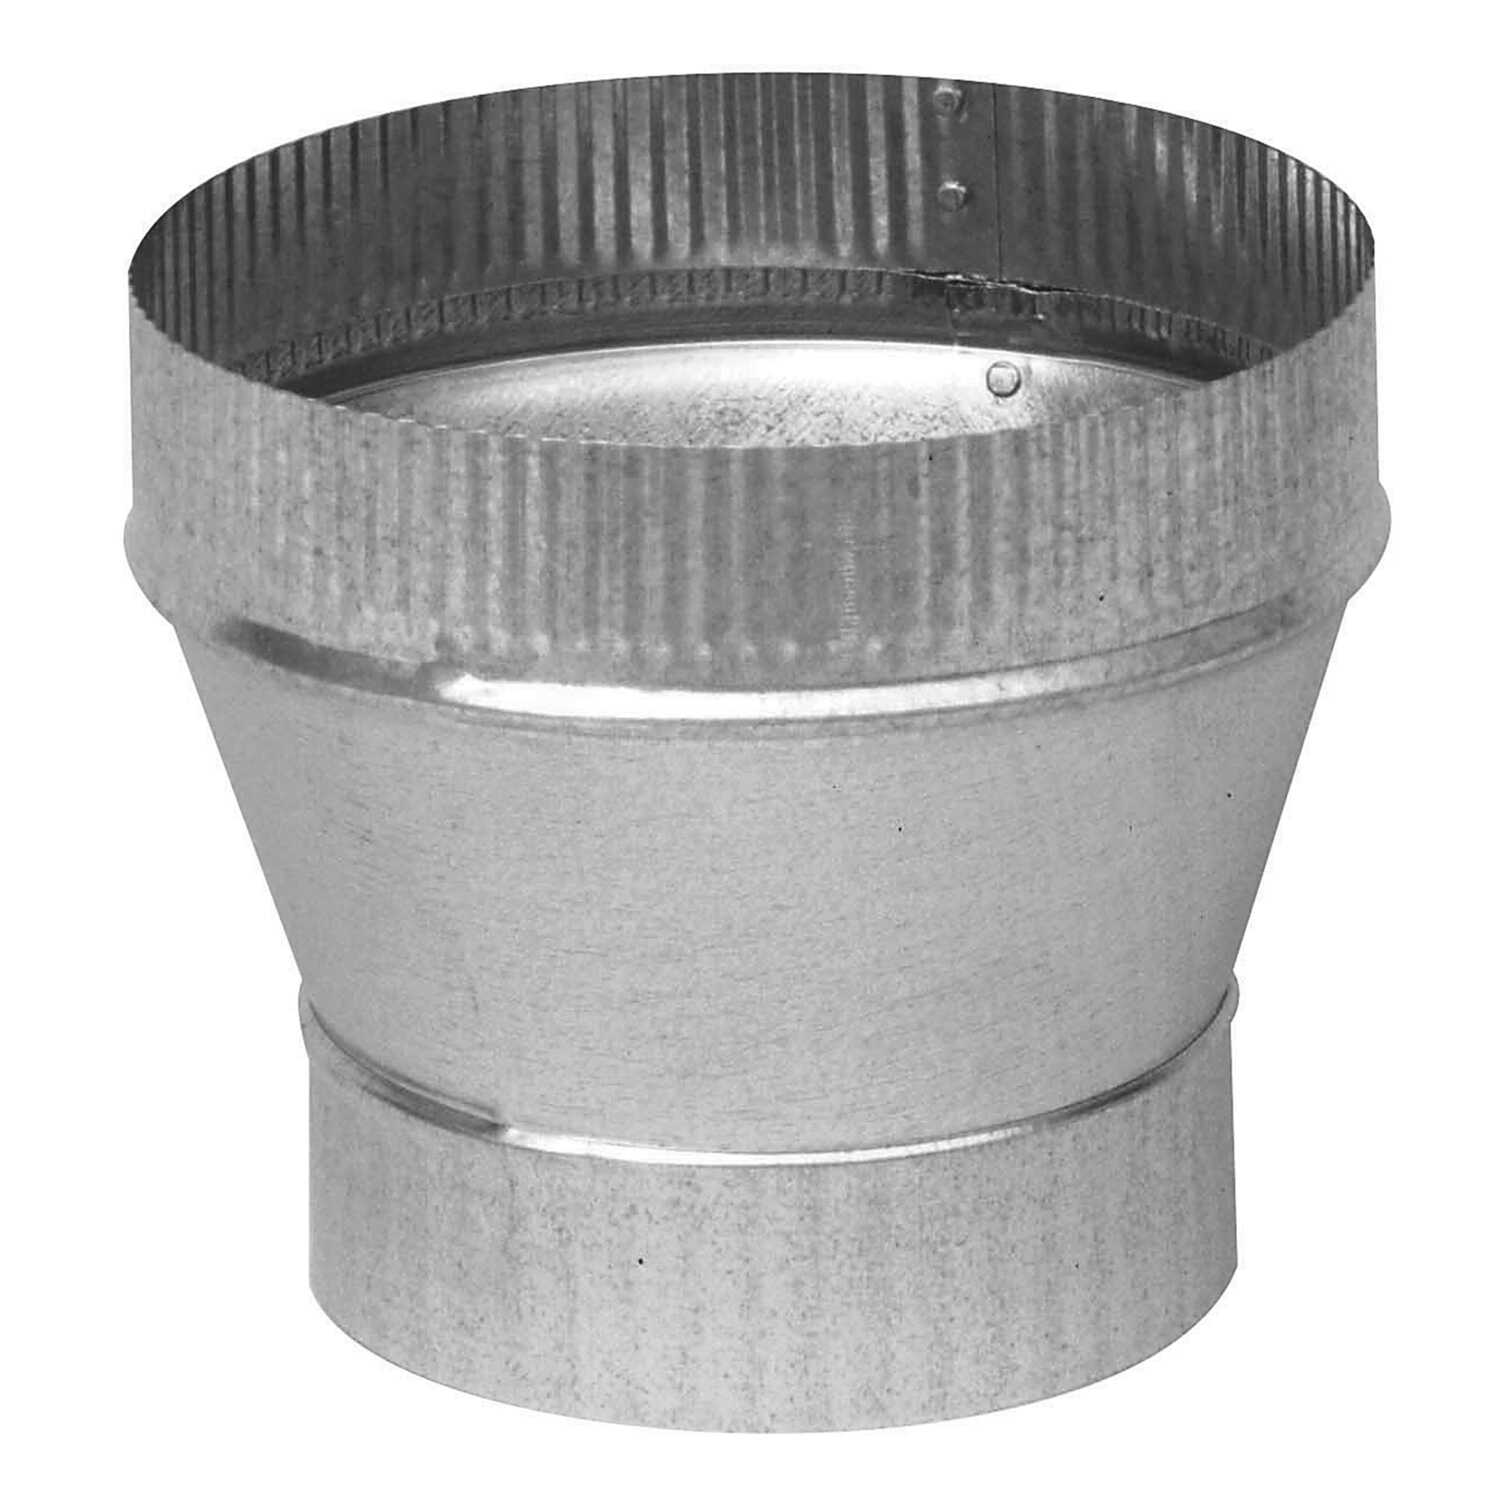 Imperial  5 in. Dia. x 6 in. Dia. Galvanized Steel  Stove Pipe Increaser